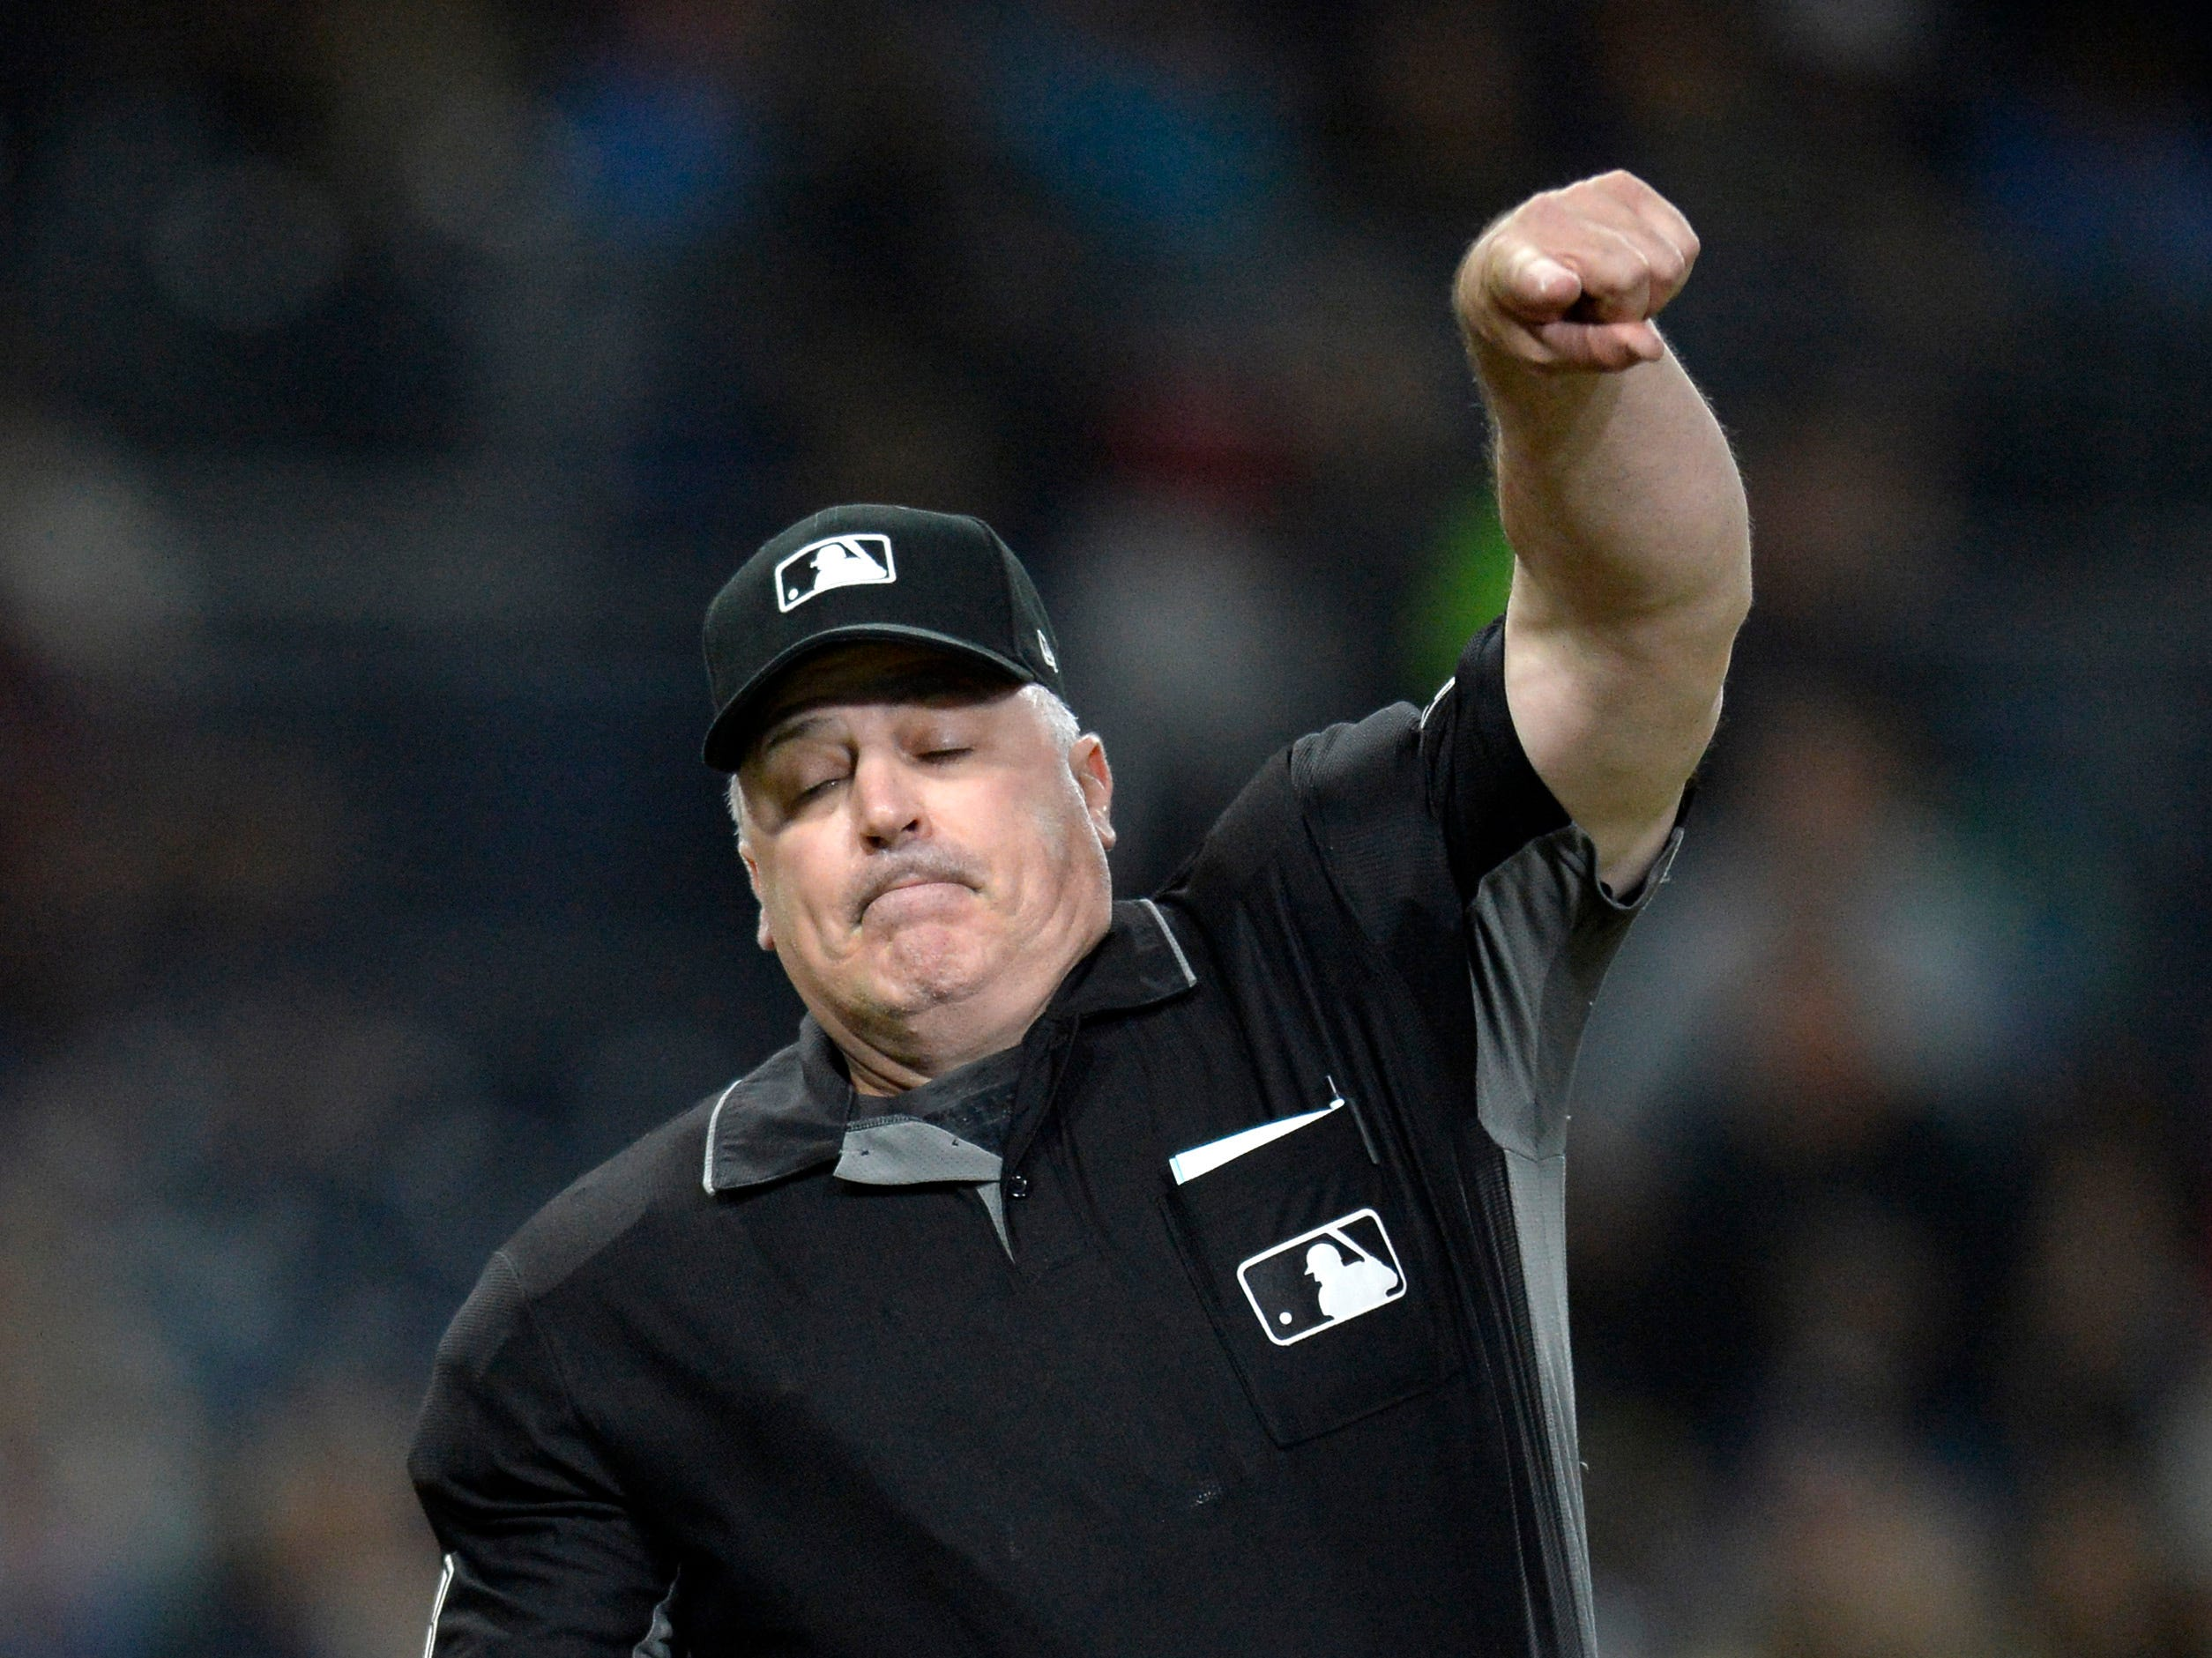 Apr 2, 2019; San Diego, CA, USA; Major League umpire Bill Welke (3) ejects San Diego Padres manager Andy Green (not pictured) during the sixth inning against the Arizona Diamondbacks at Petco Park. Mandatory Credit: Jake Roth-USA TODAY Sports